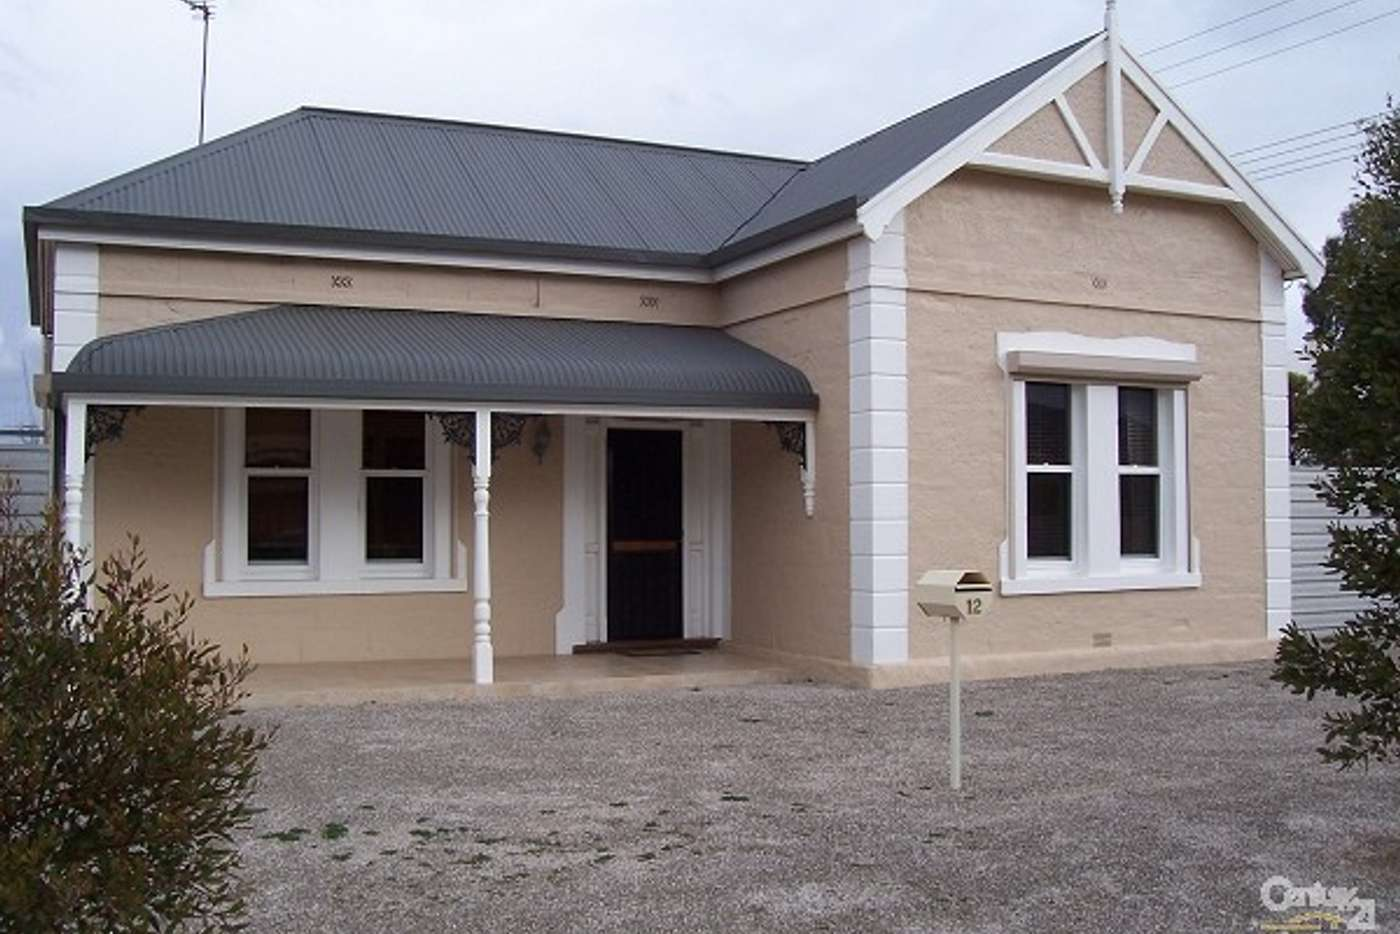 Main view of Homely house listing, 12 Frederick Street, Quorn SA 5433